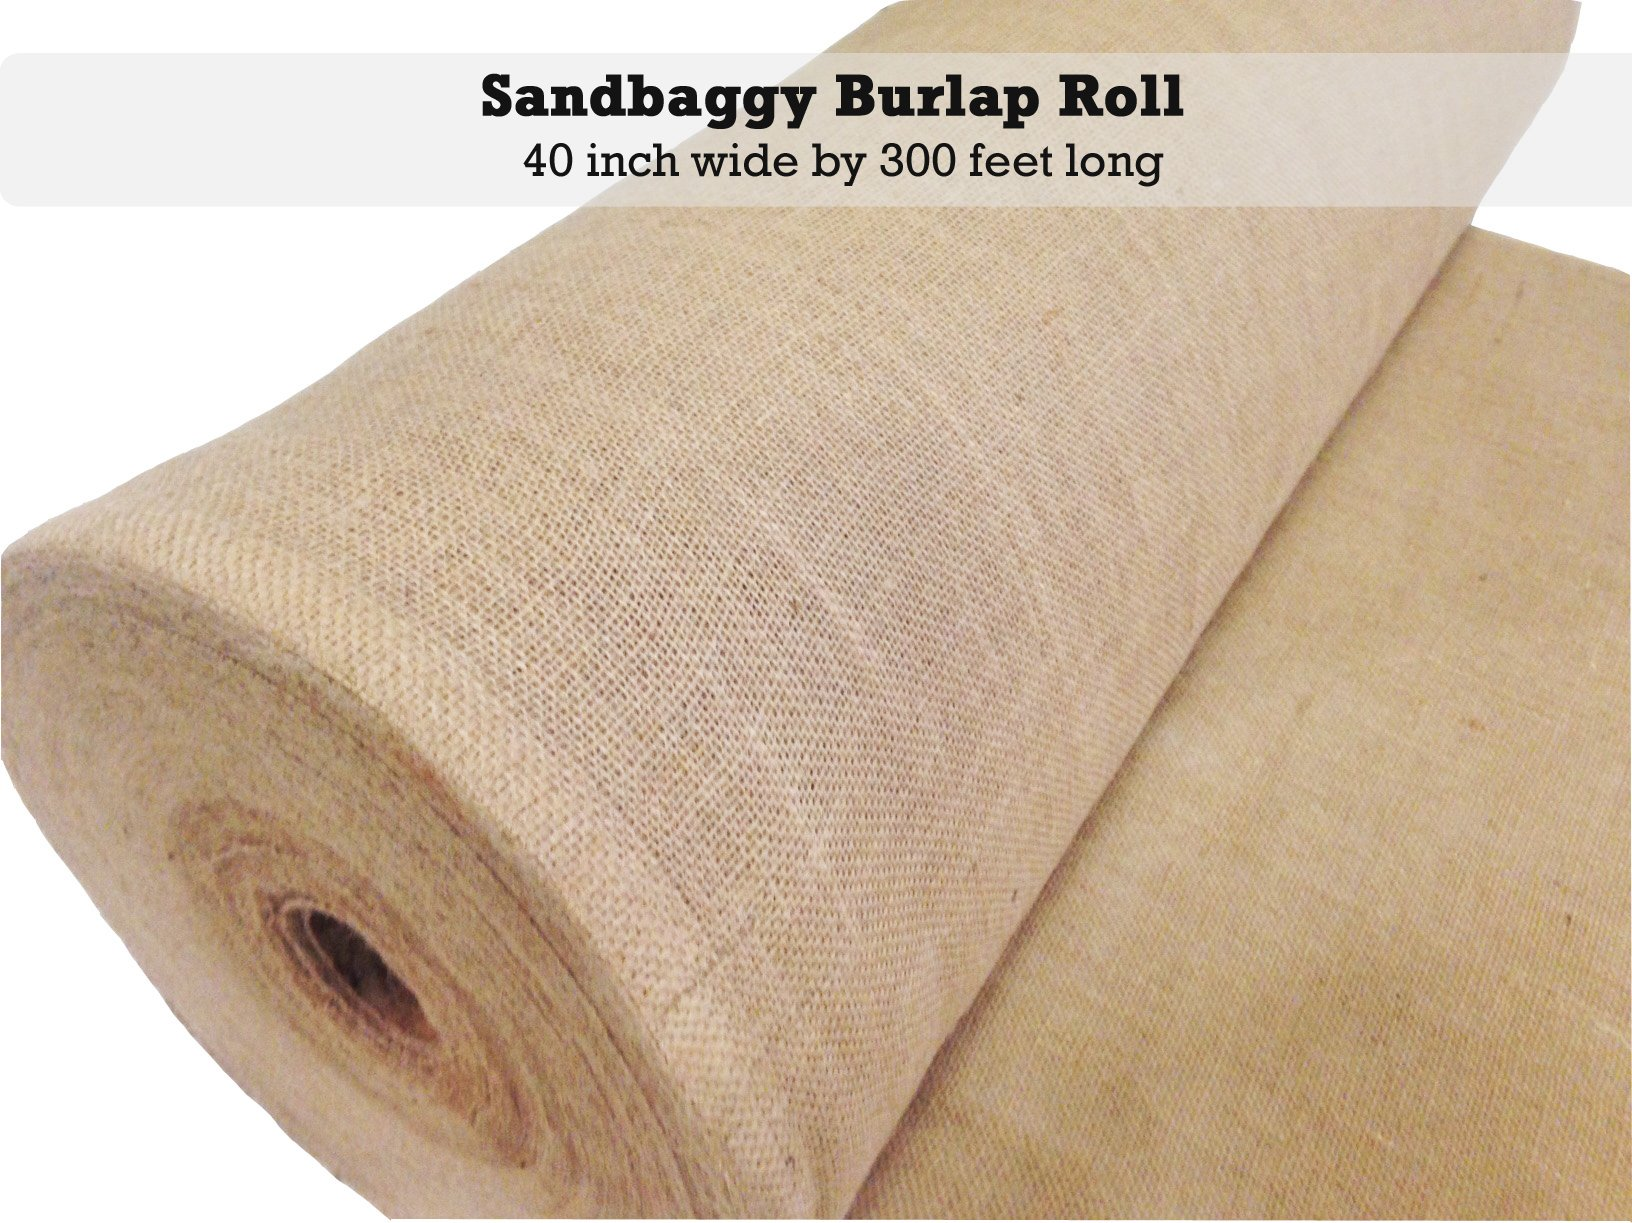 Sandbaggy Burlap Fabric Roll- for Garden, Yard, Wedding, Craft, Decorating Tables - 40 inch x 300 ft (1) by Sandbaggy (Image #2)